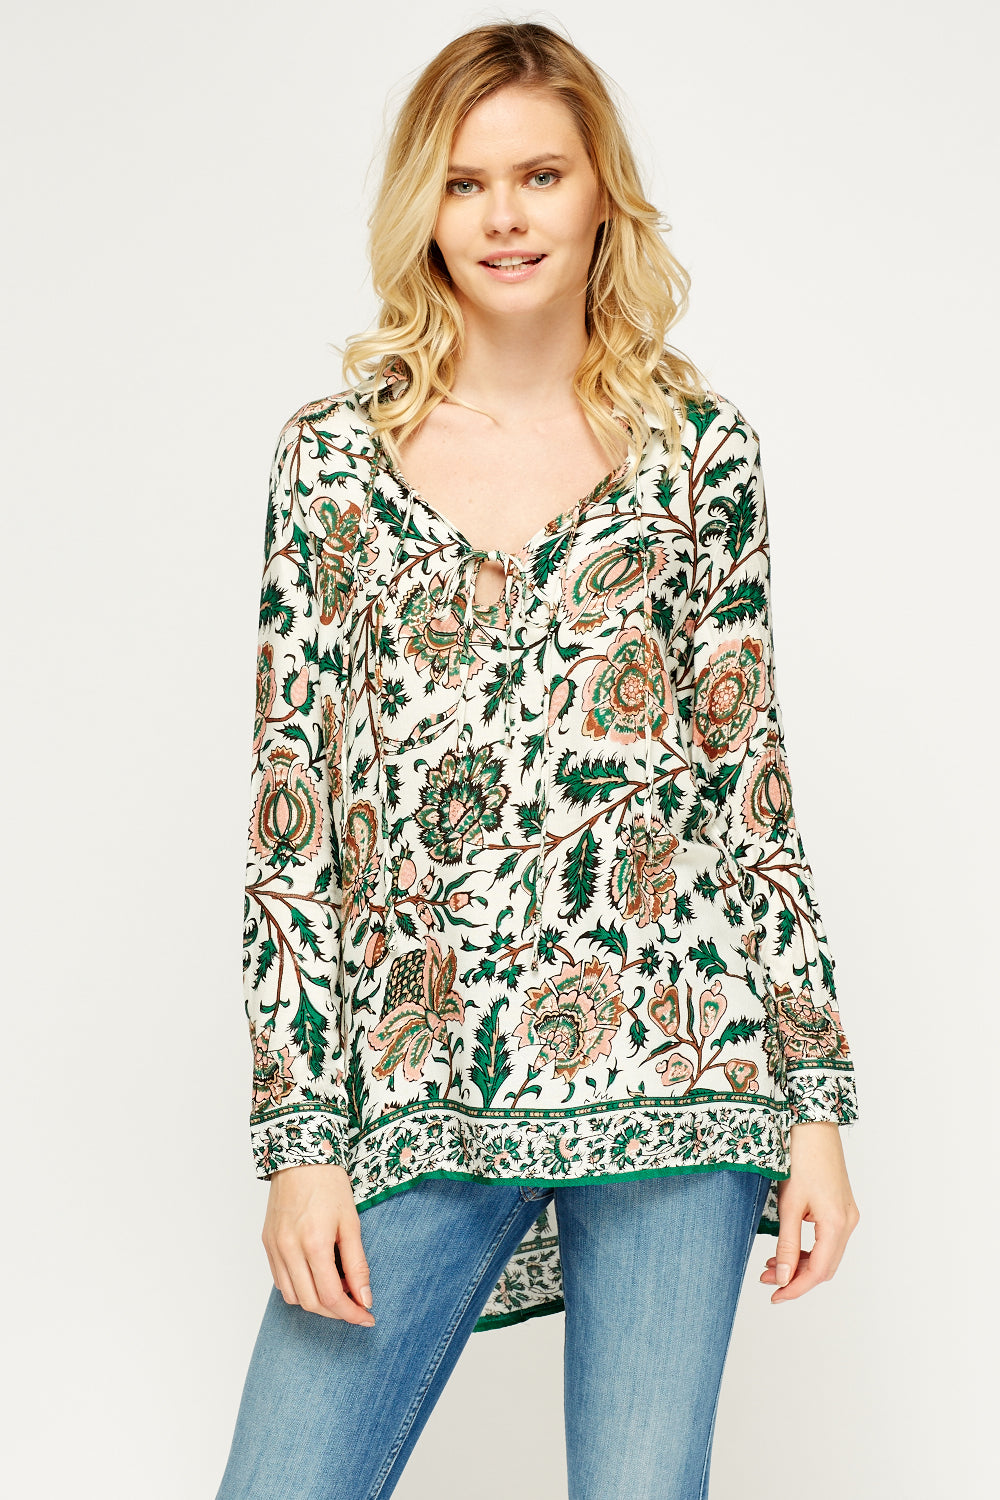 Top casual estampado - MiTiendaSecreta